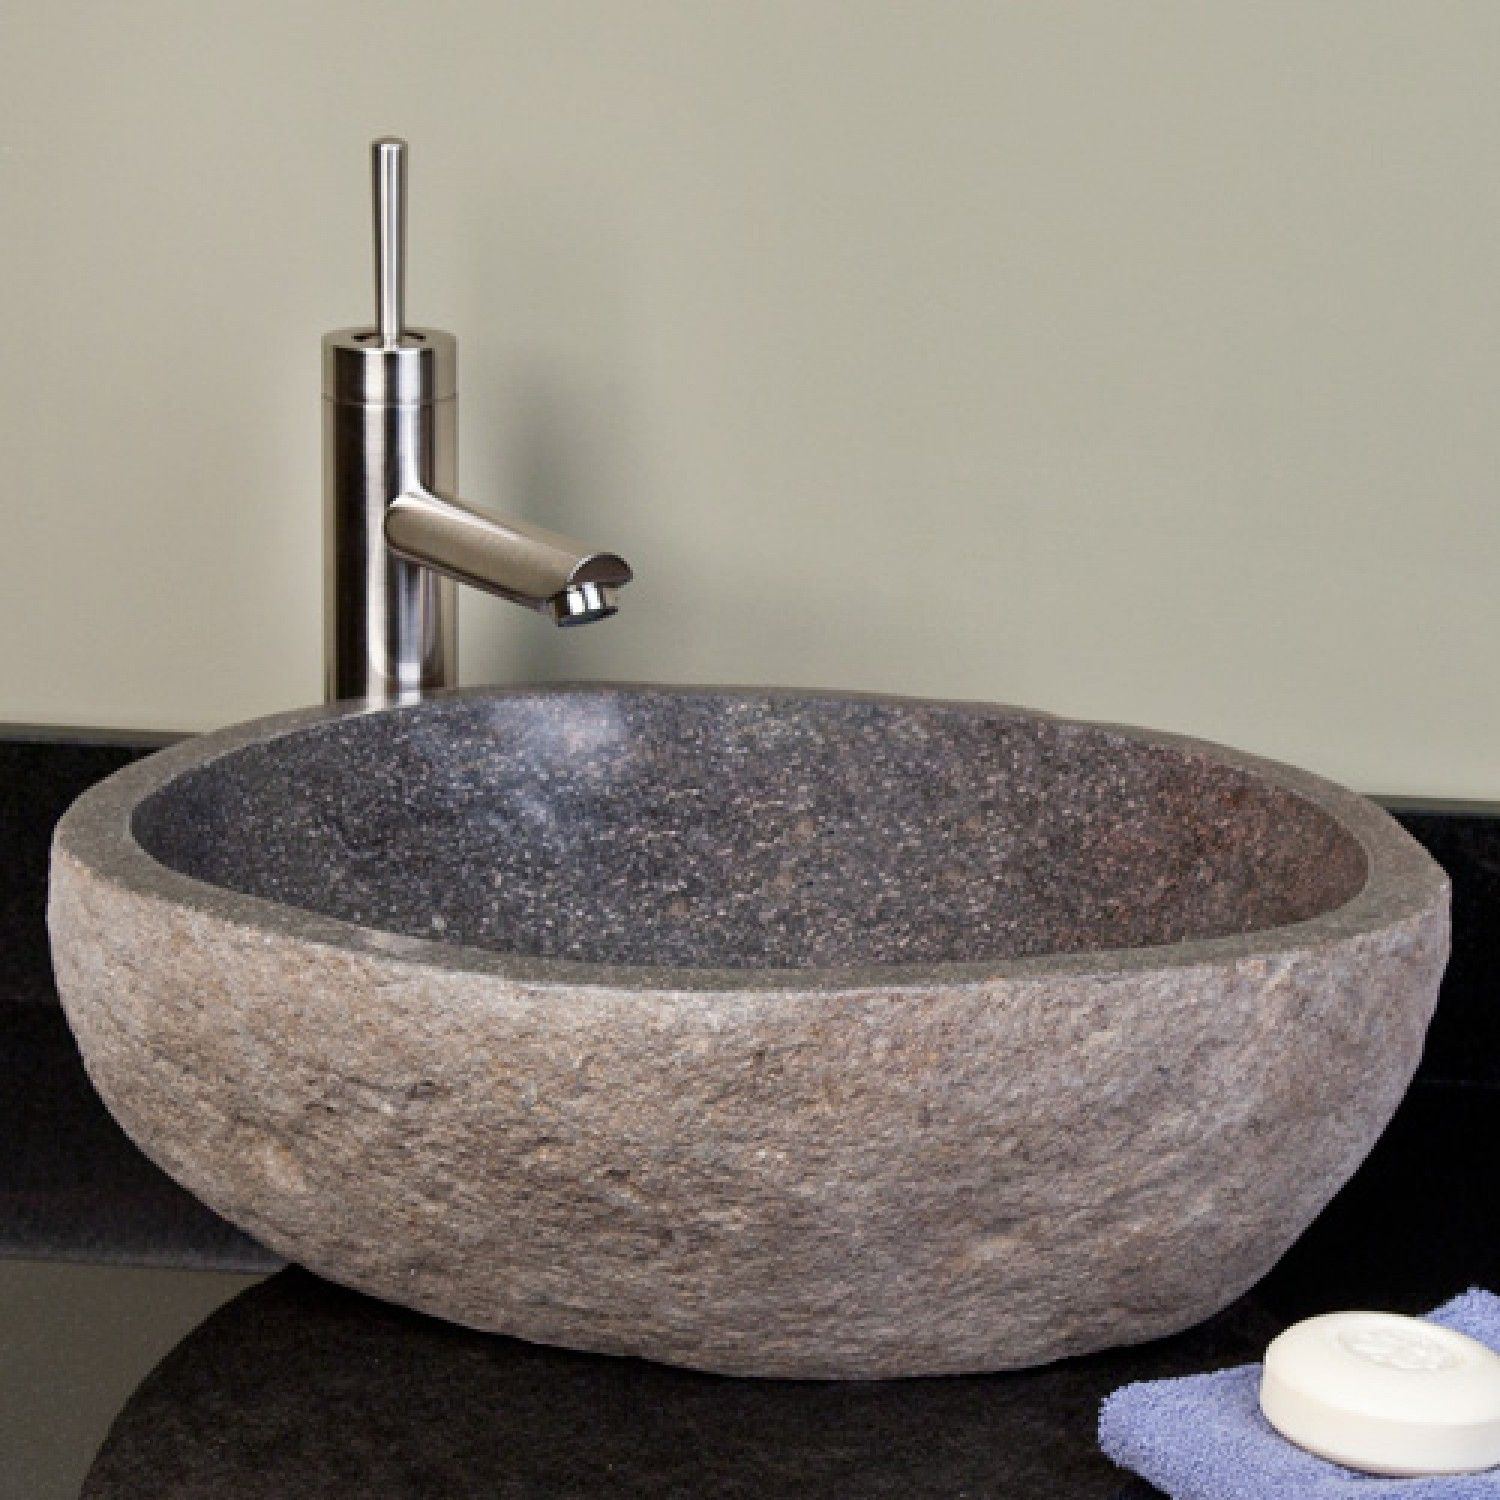 Dark Gray River Stone Vessel Sink   Vessel Sinks   Bathroom Sinks   Bathroom